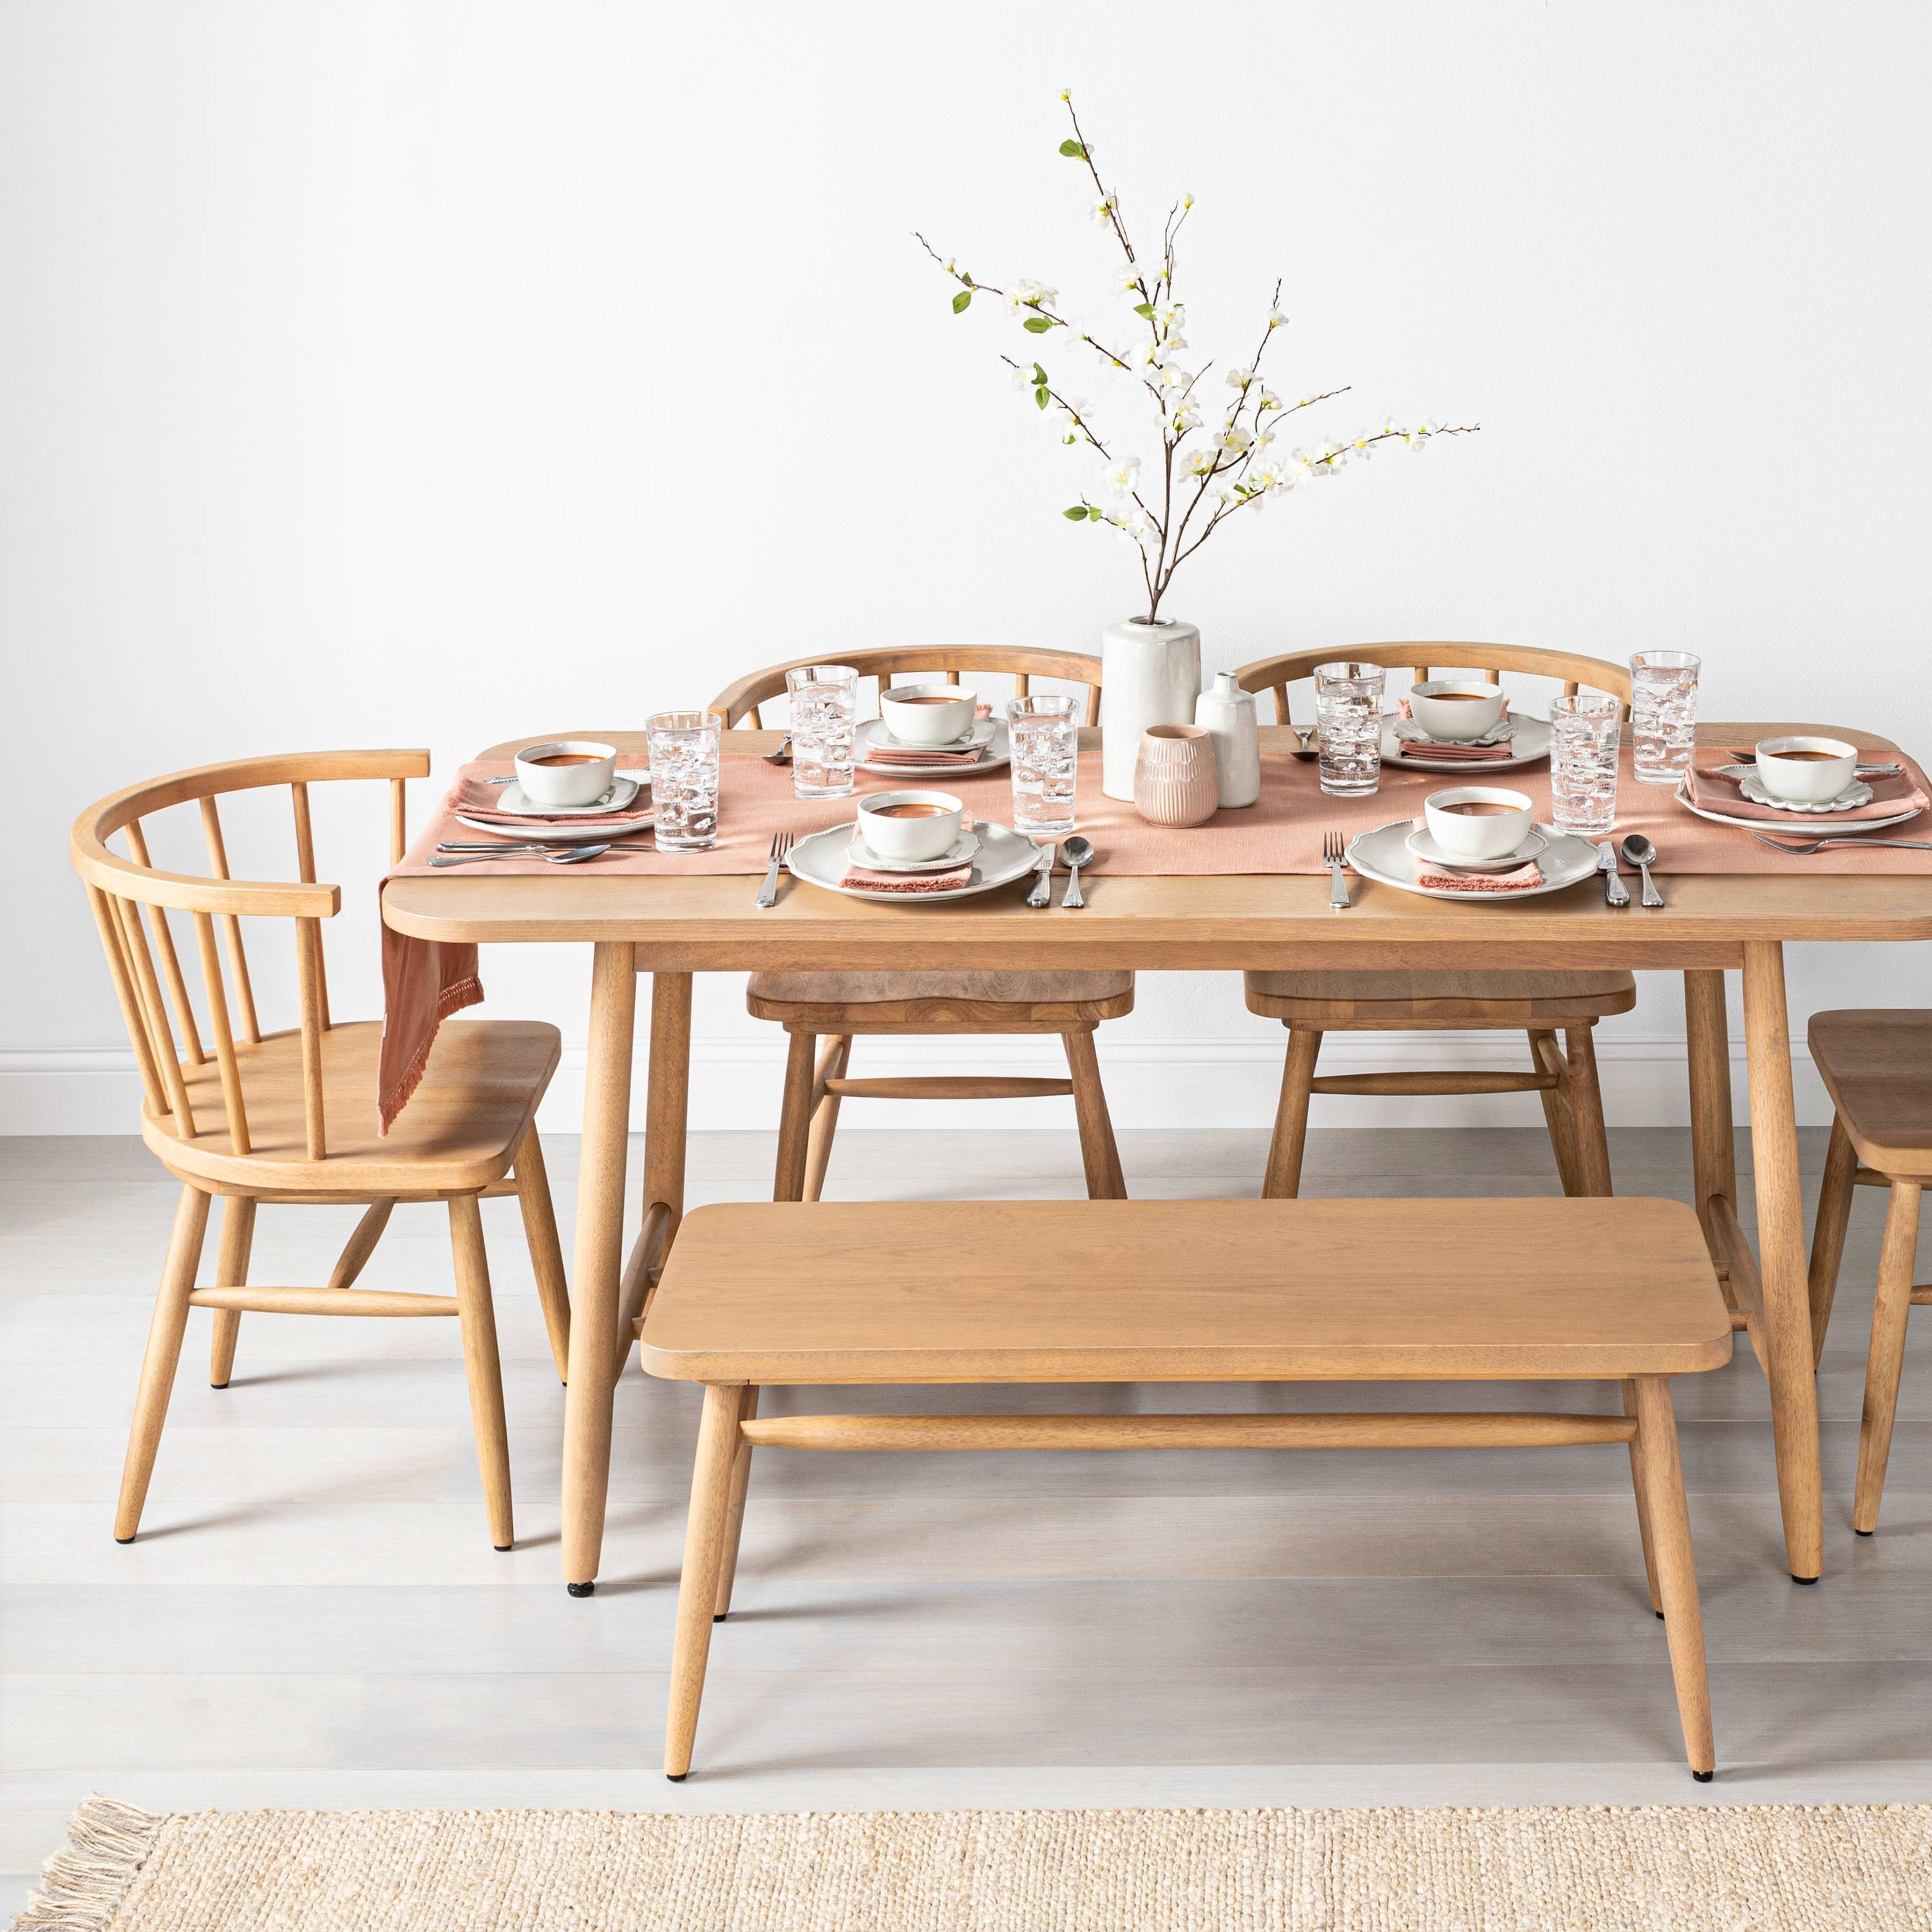 Pale wood table with table settings.